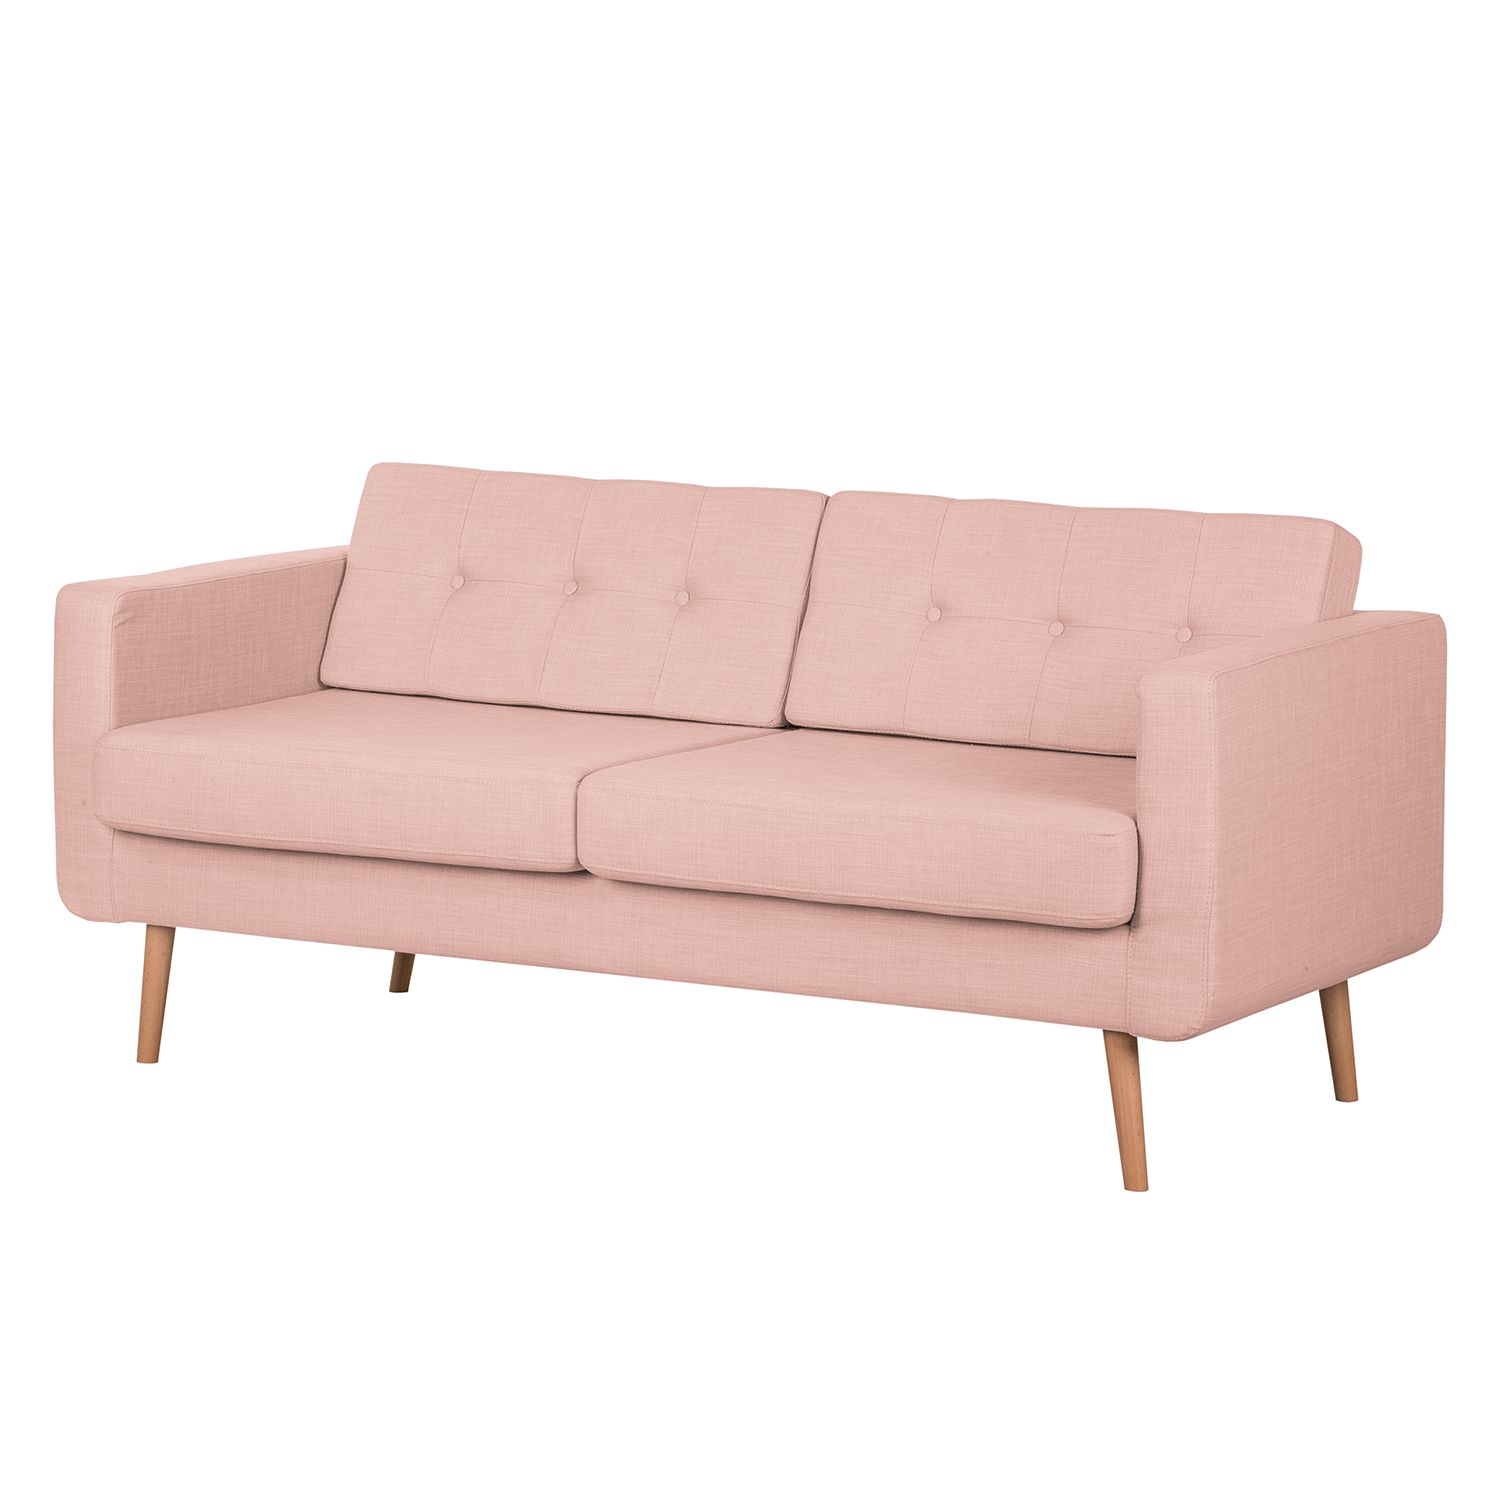 Sofa Aira I (3-Sitzer) – Webstoff – Mauve, kollected by Johanna bestellen